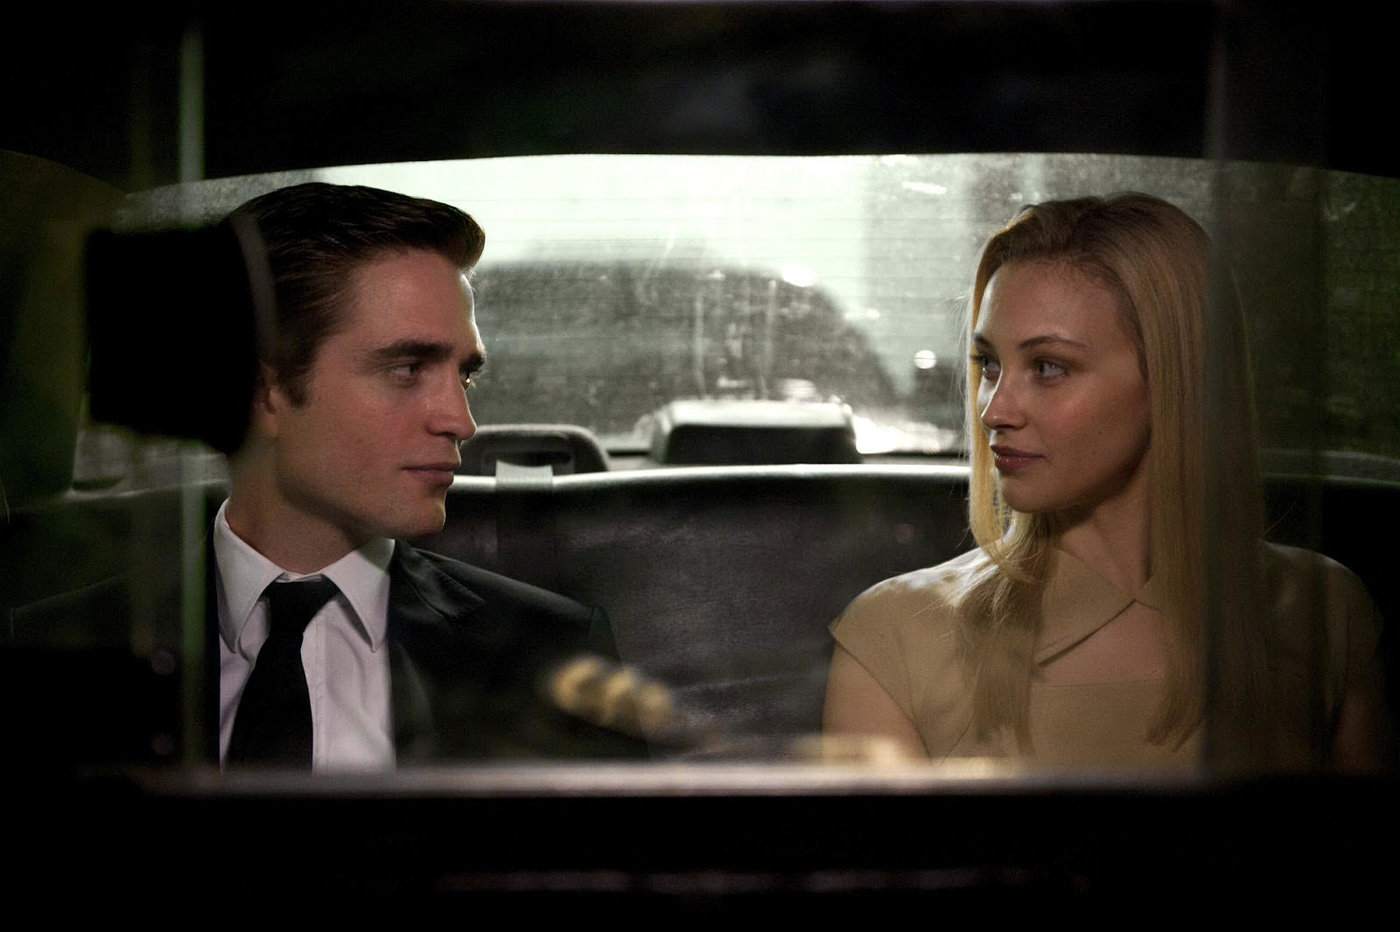 Robert Pattinson and wife Sarah Gadon in Cosmopolis (2012)